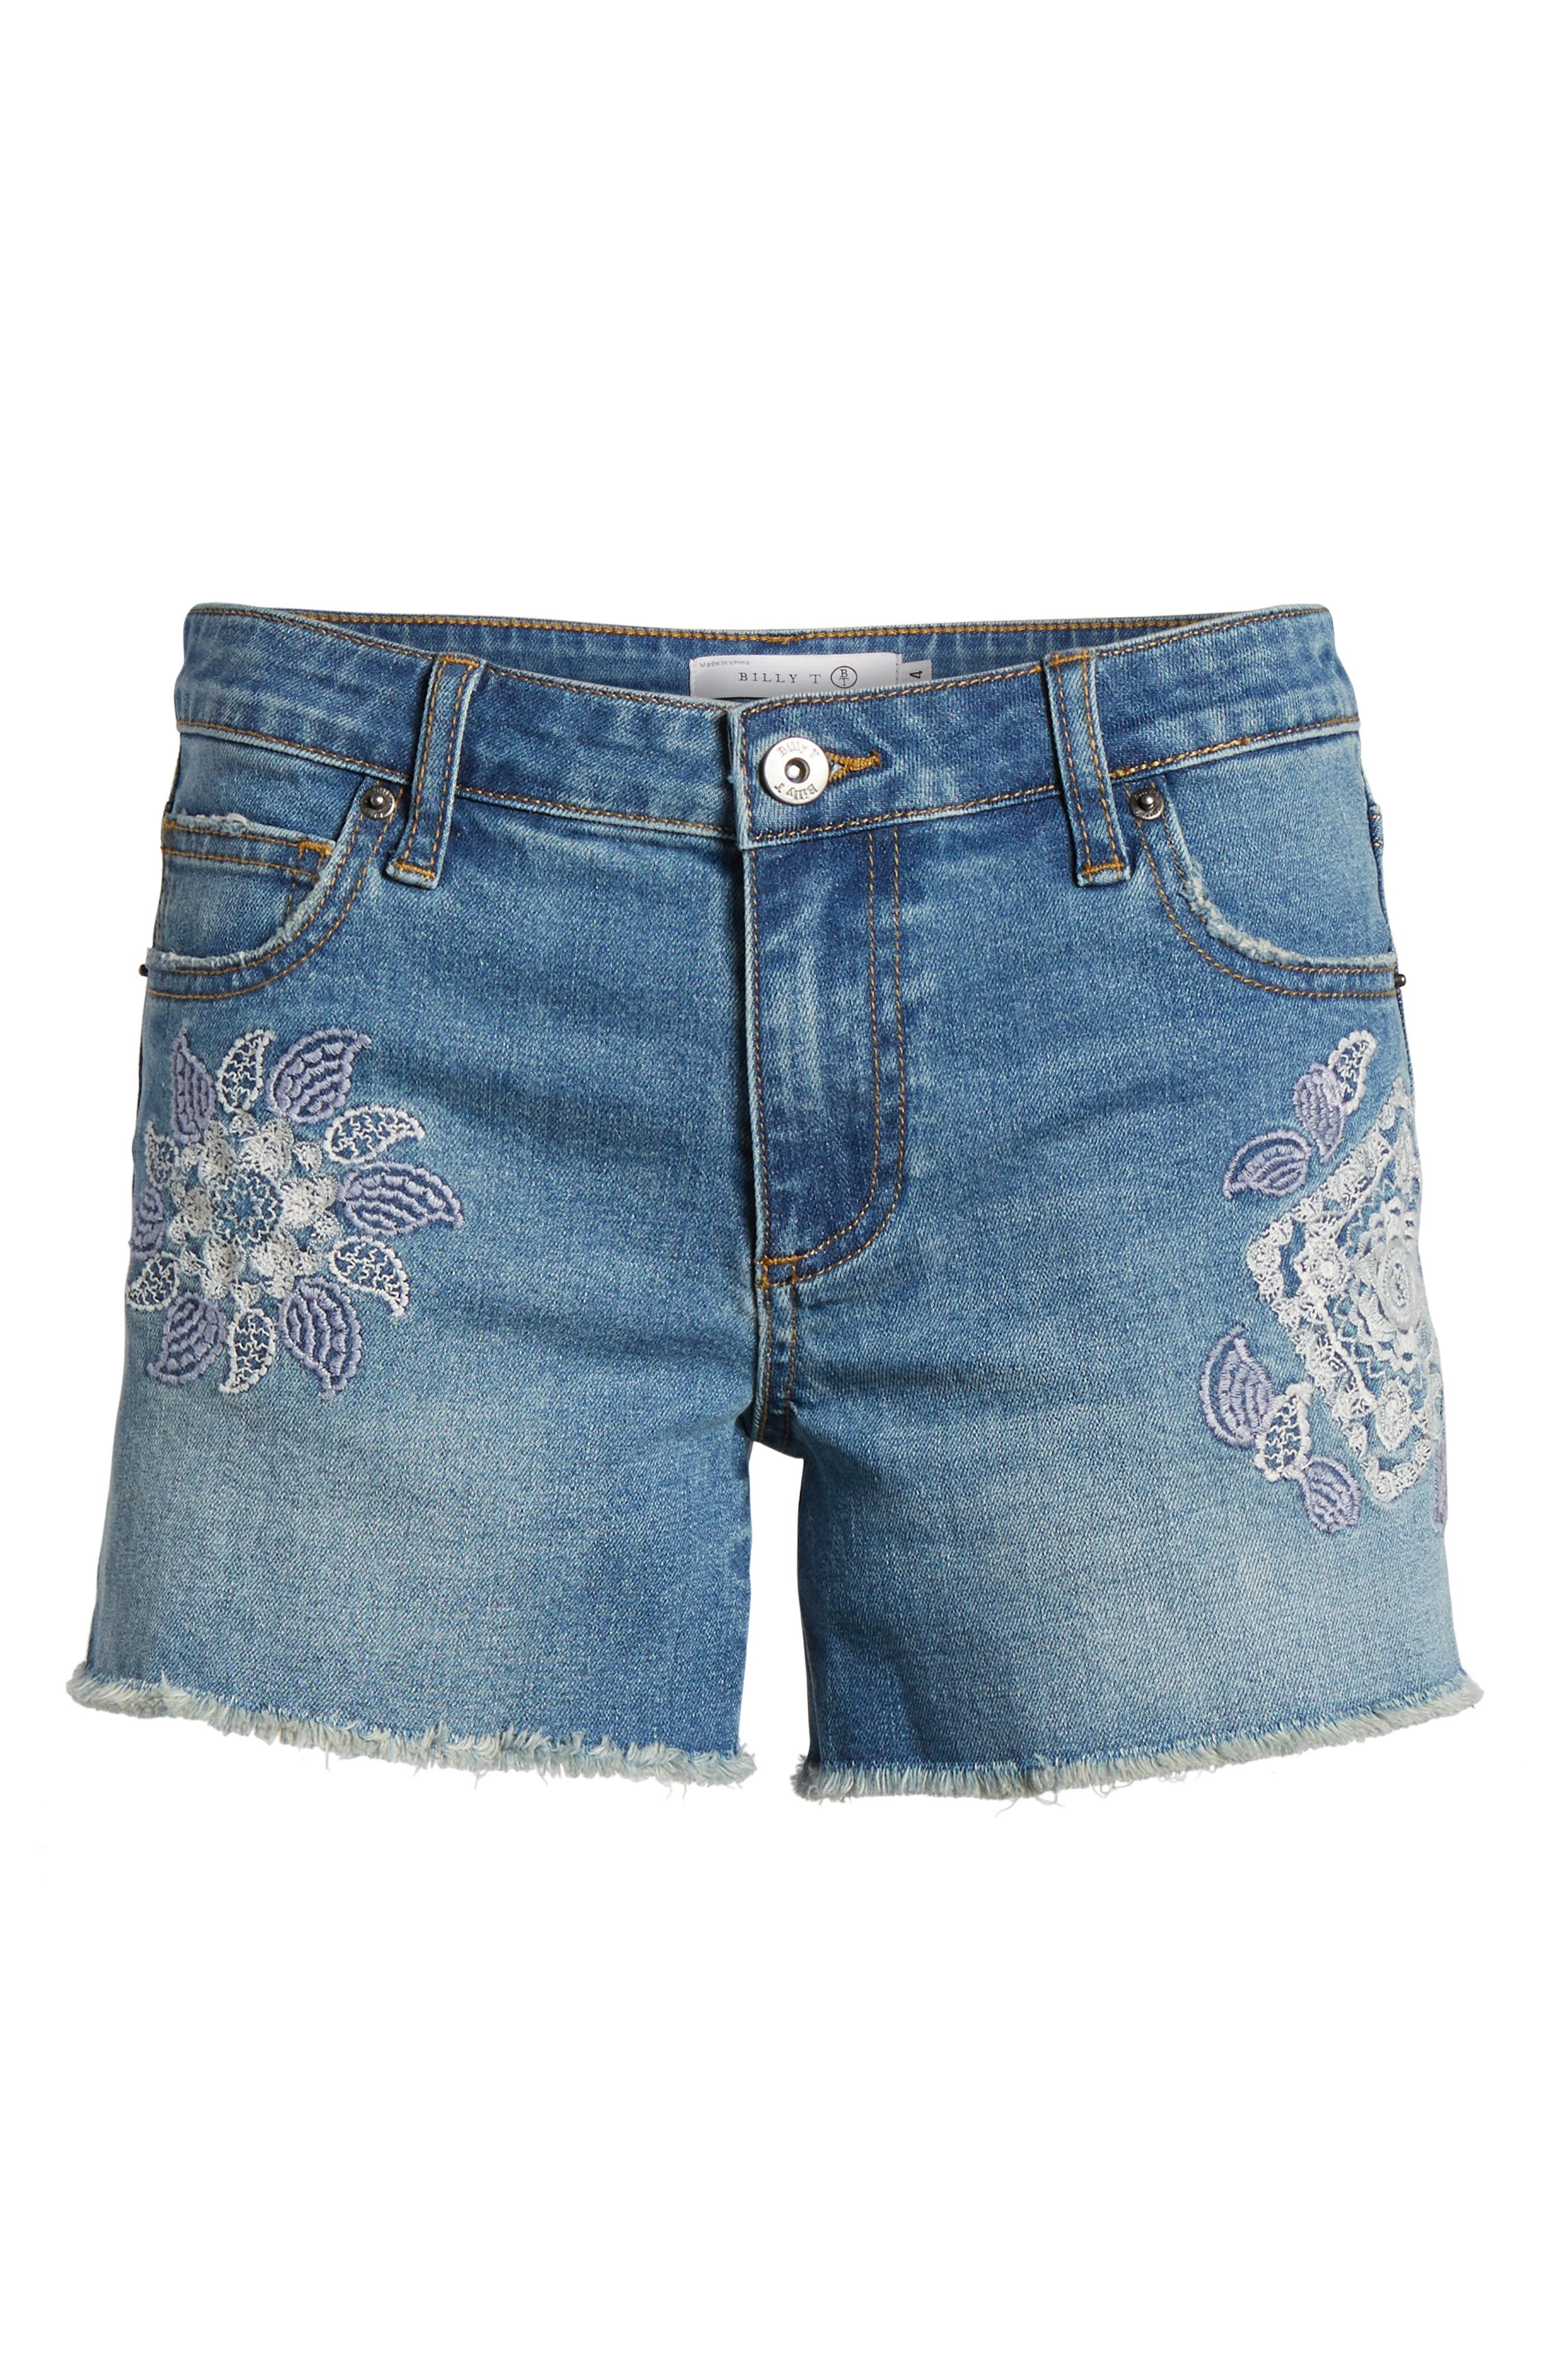 Embroidered Denim Shorts,                             Alternate thumbnail 7, color,                             Blue W/ Embroider